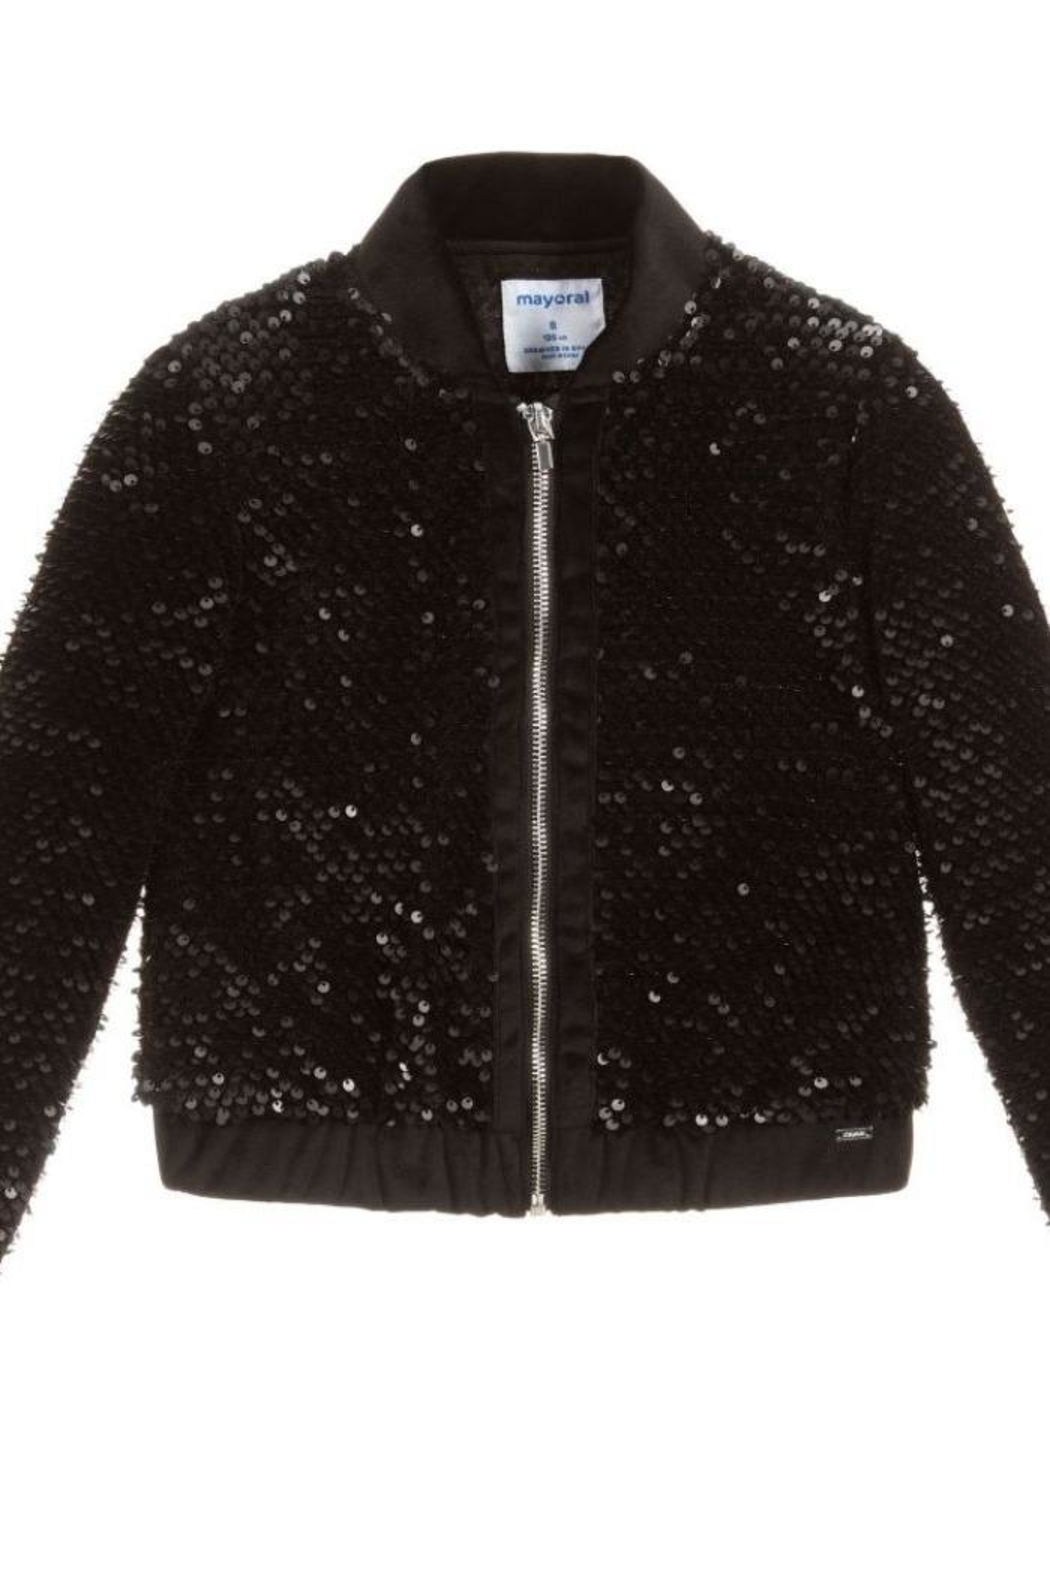 Mayoral Sequin Jacket - Main Image